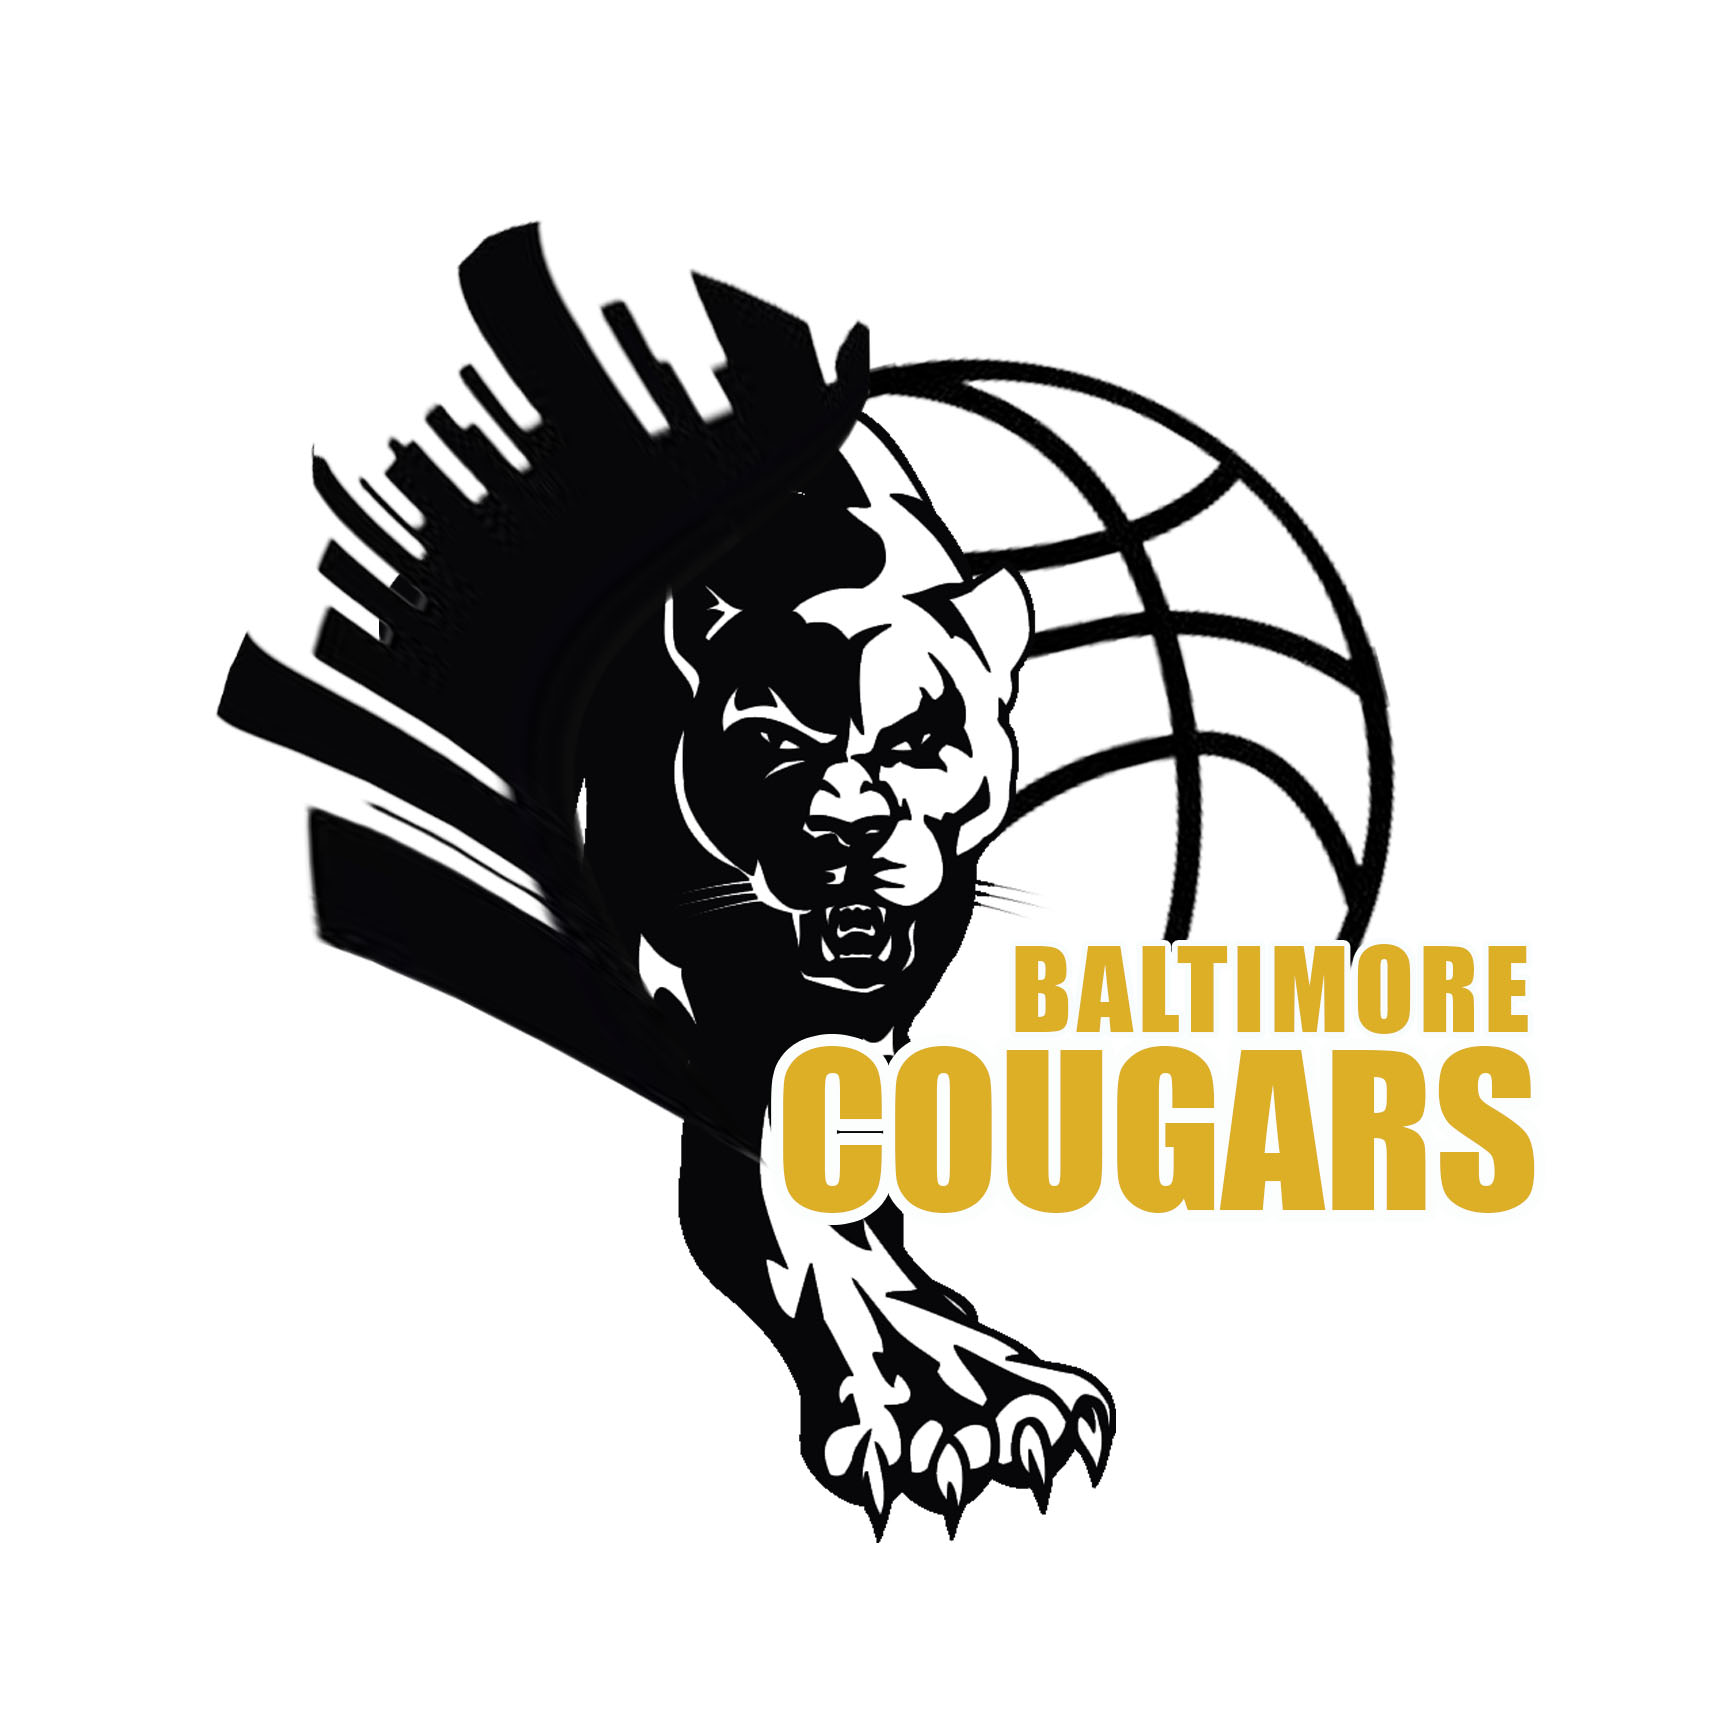 Cougars in baltimore